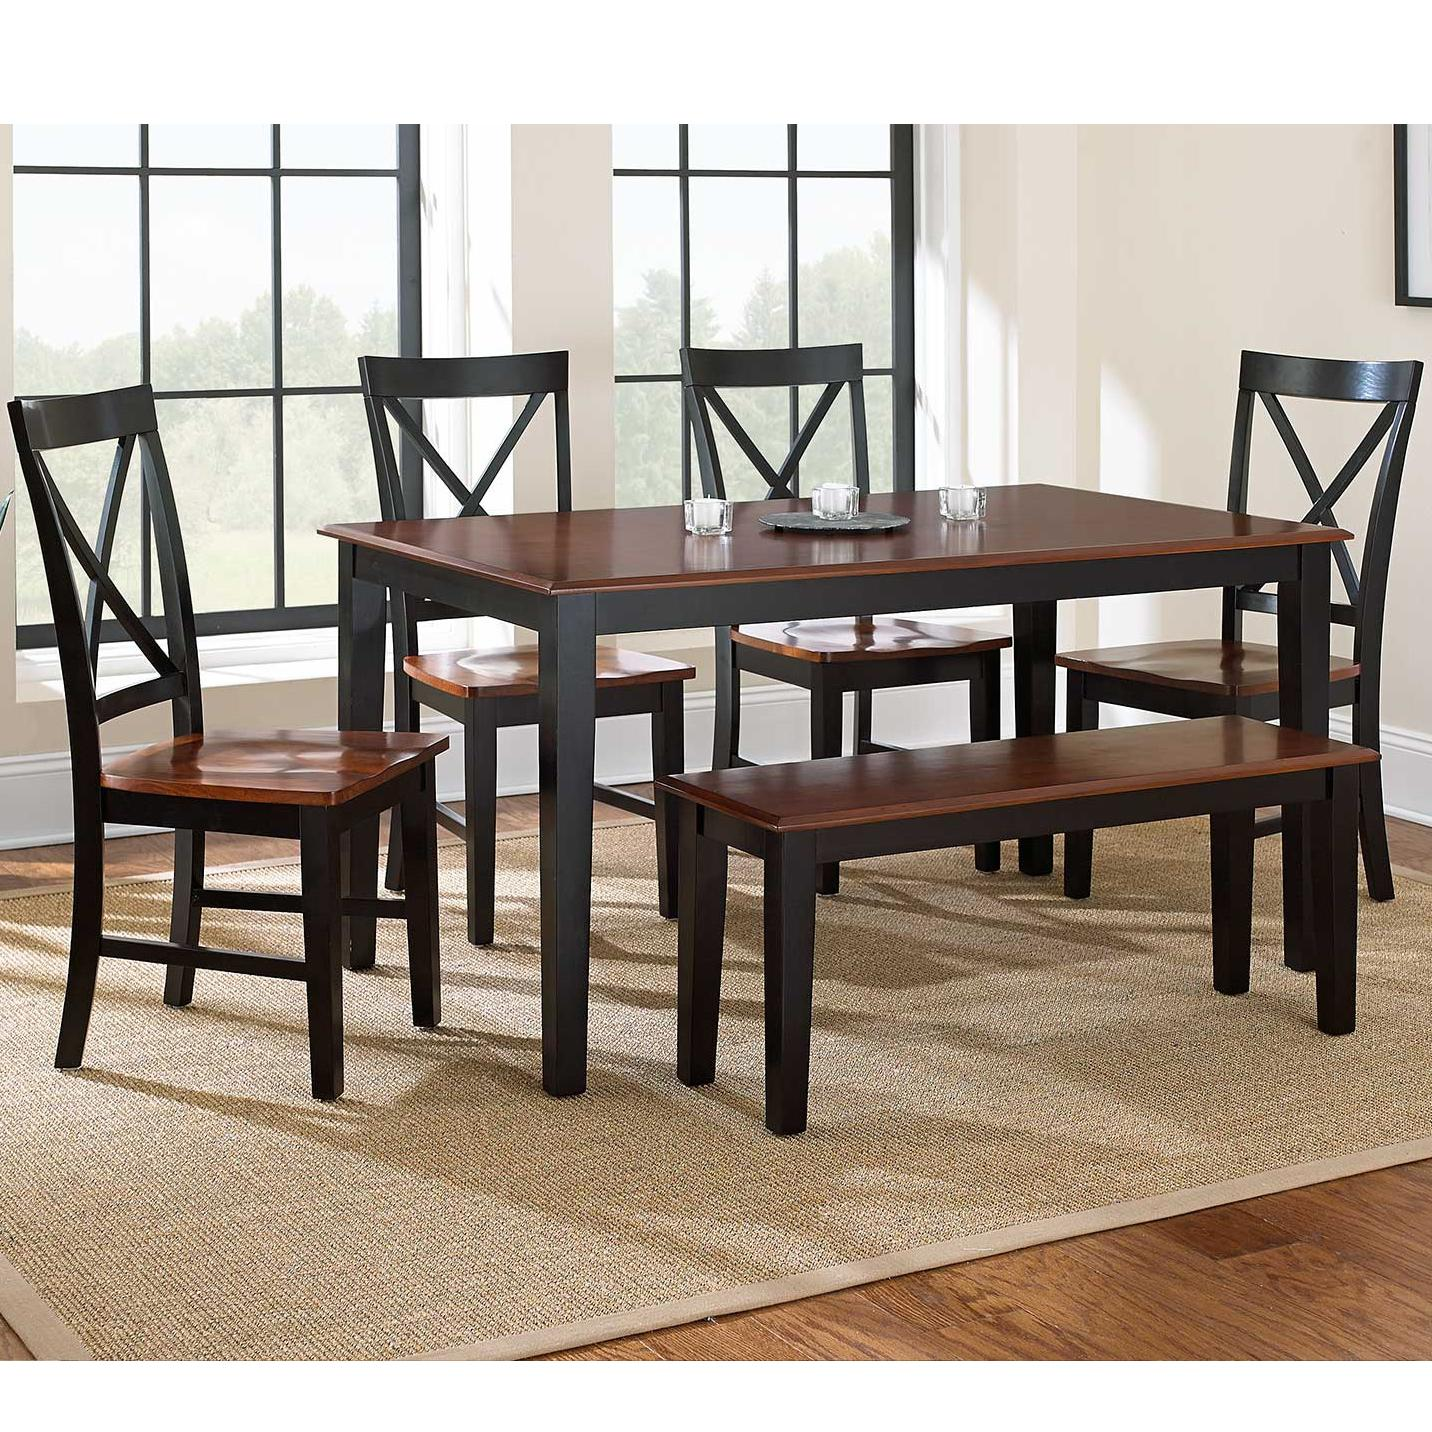 Vendor 3985 Kingston 6-Piece Casual Dining Table, Bench